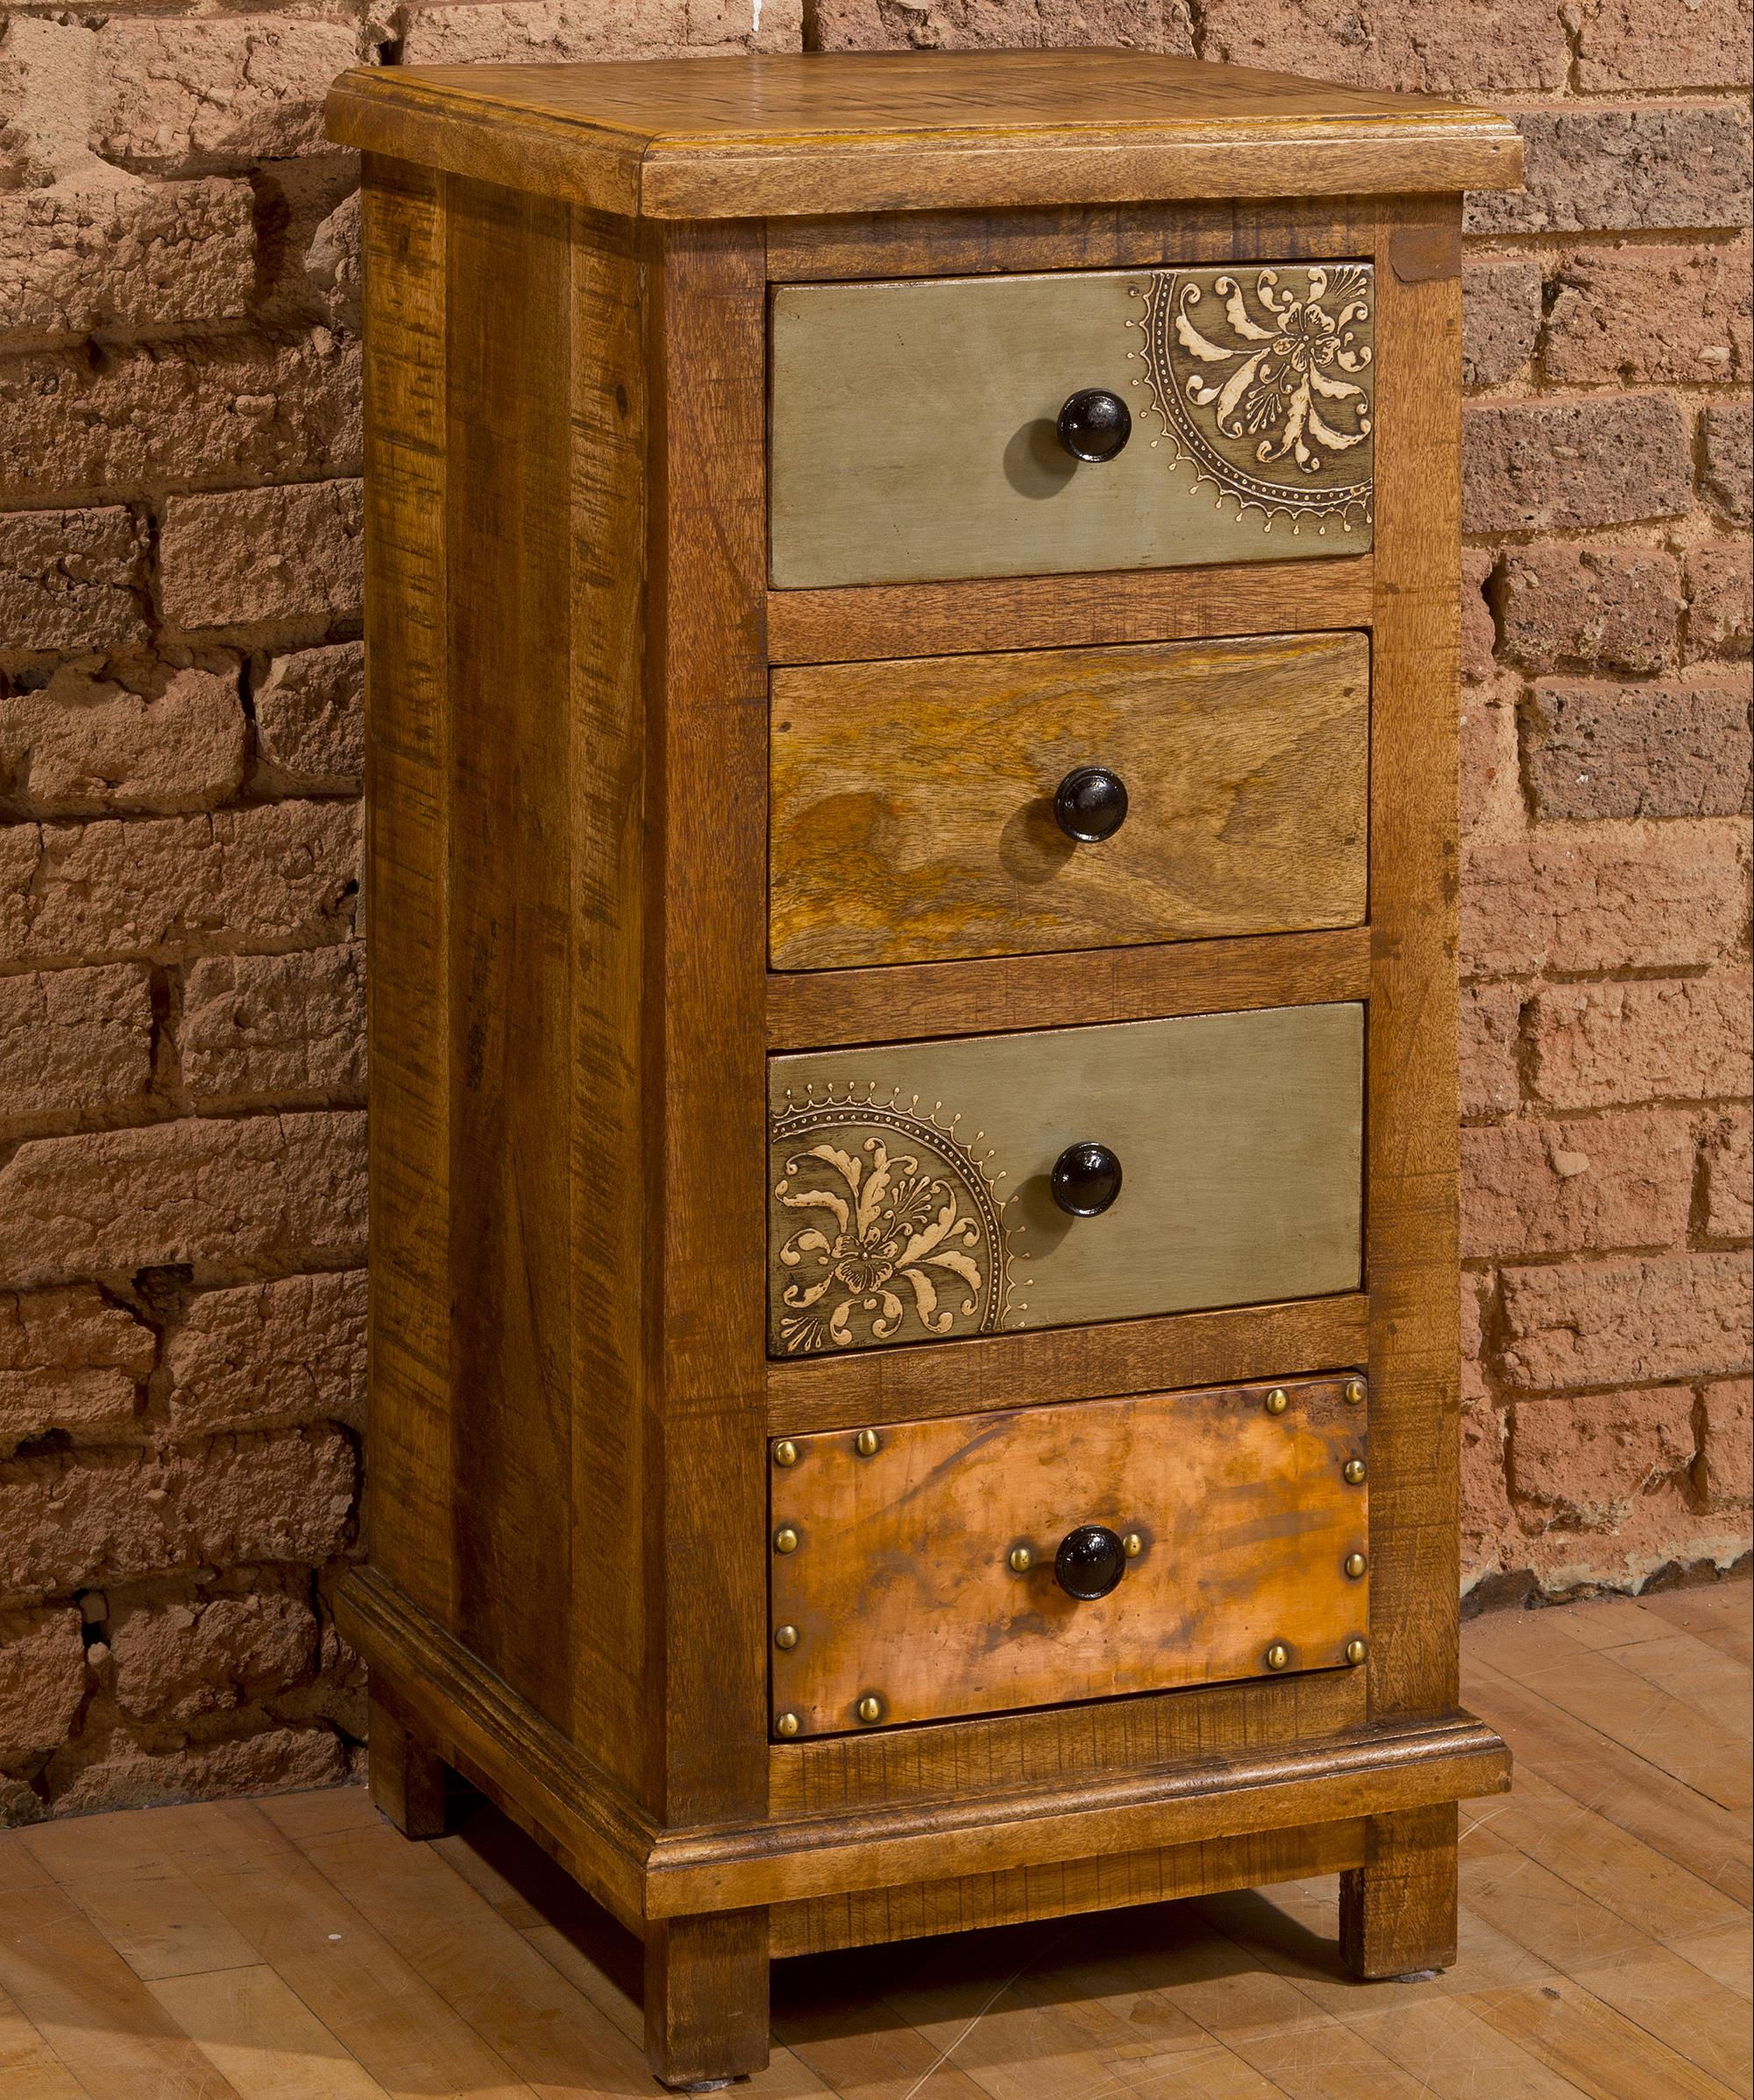 Hillsdale Accents Four Drawer Cabinet with X Design - Item Number: 5732-888